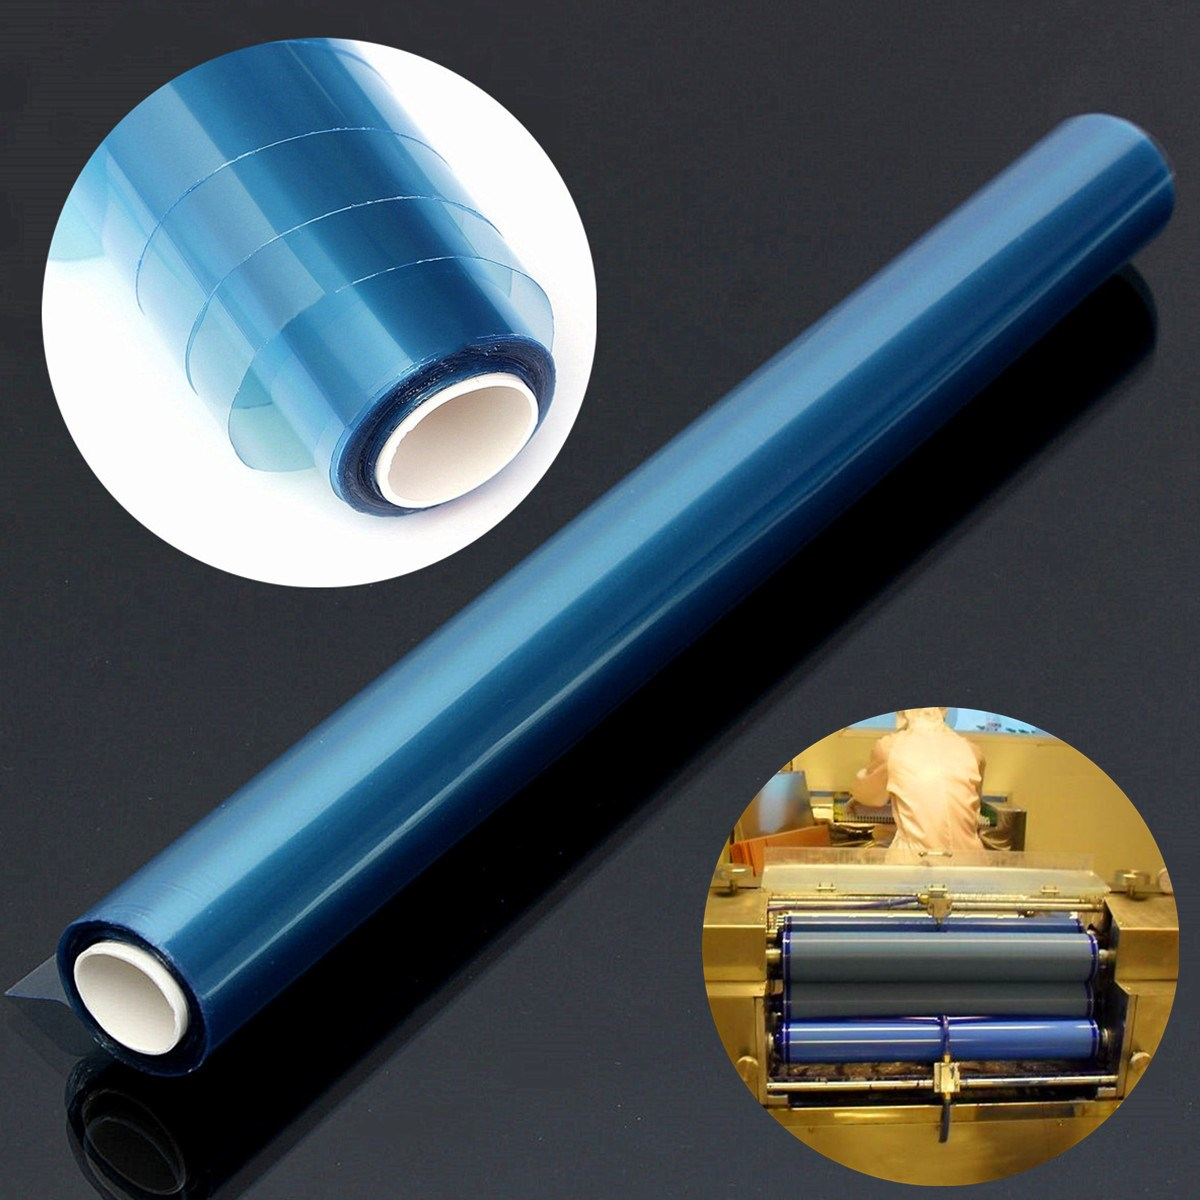 PCB Photosensitive Dry Film for Circuit Production Photoresist Sheets 30cm x 5m(China (Mainland))